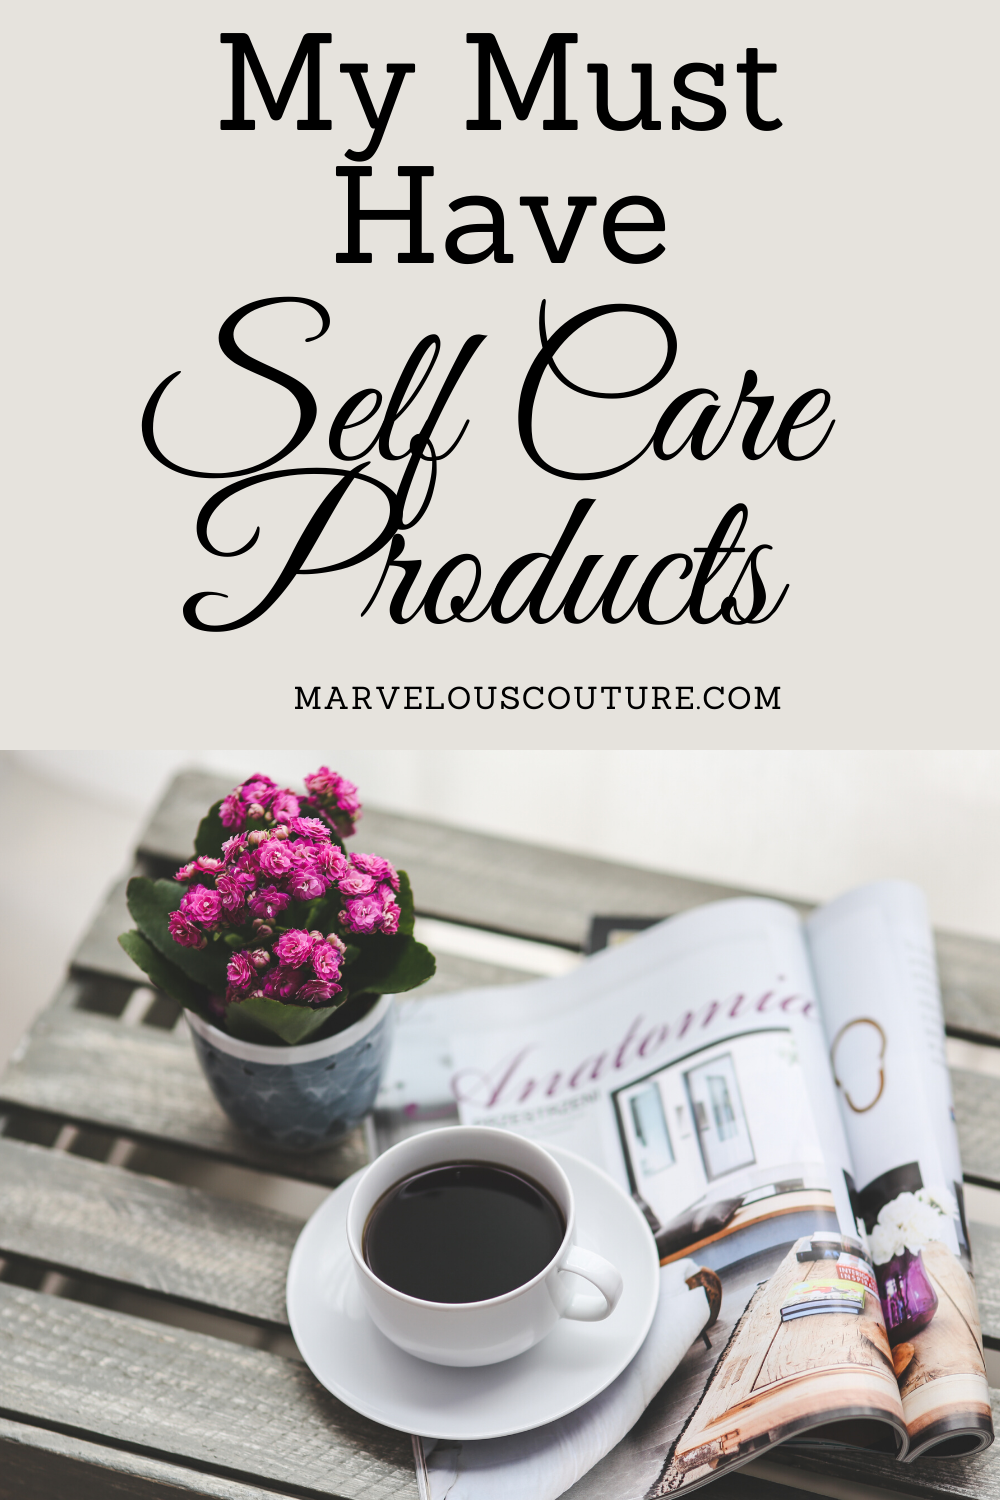 My Must Have Self Care Products in 2020 Self care, Self